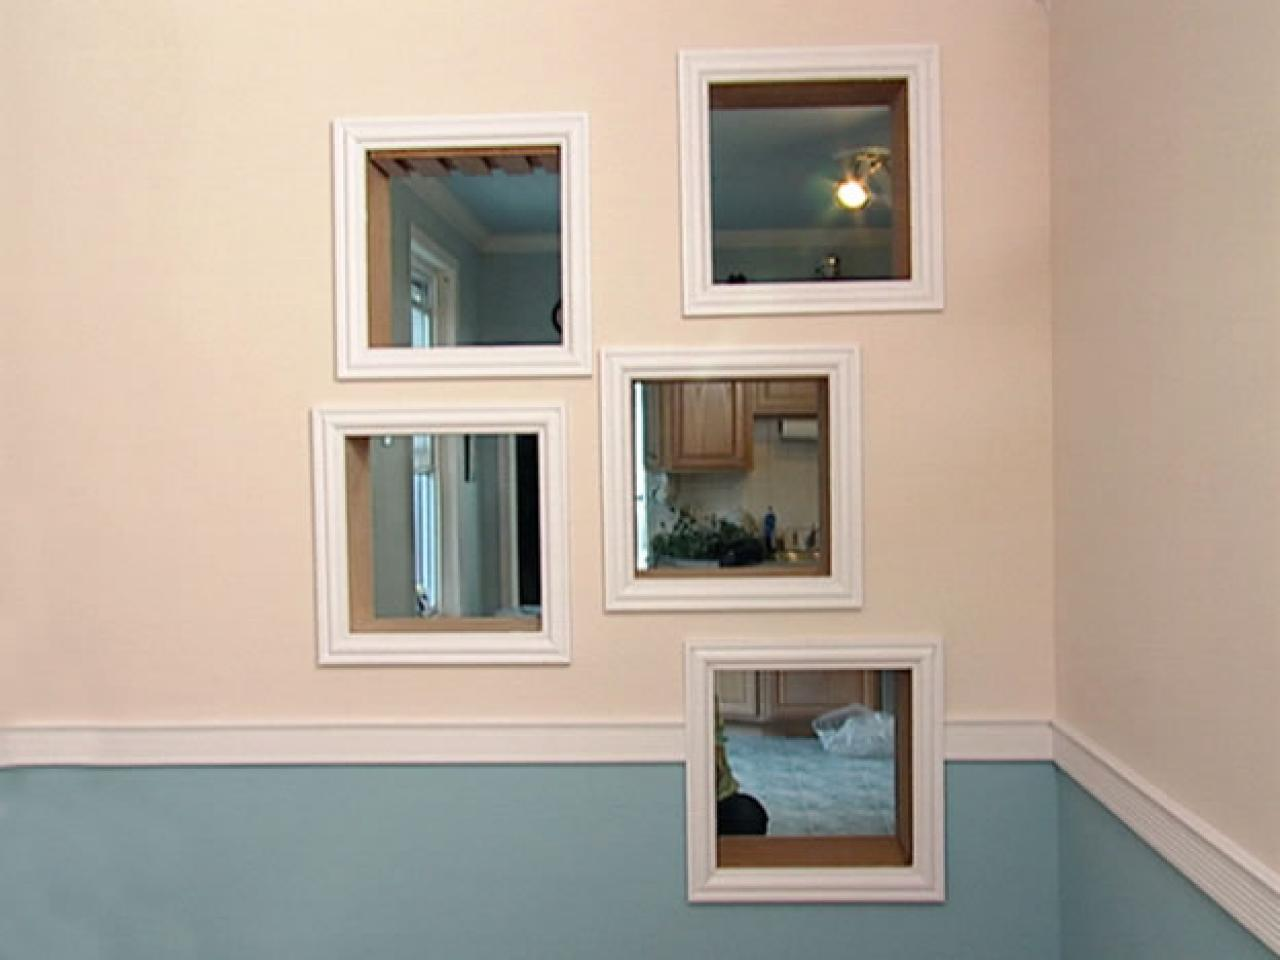 How To: Framing Mirrors with Crown Molding | HGTV